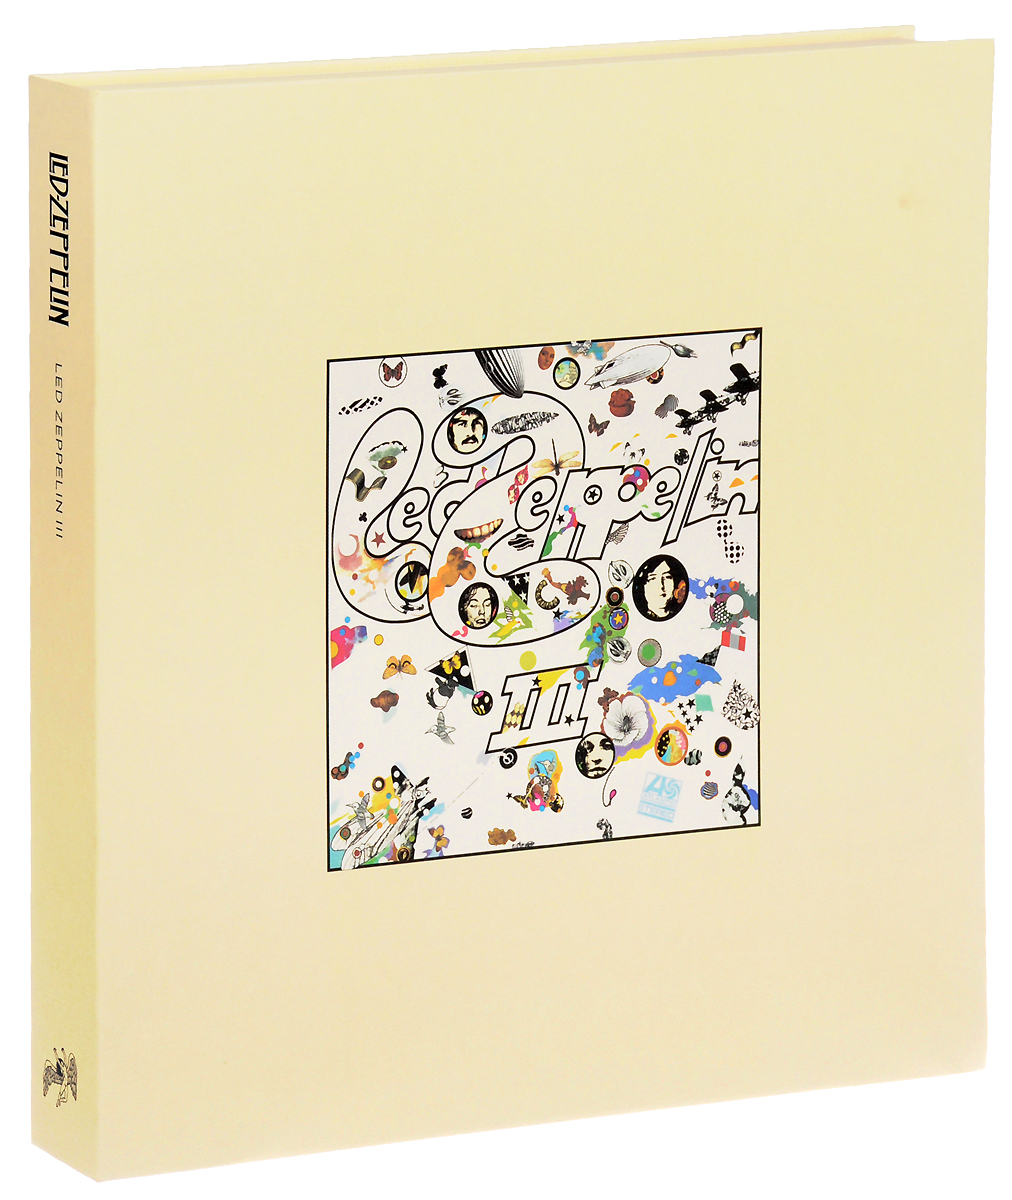 Led Zeppelin Led Zeppelin. Led Zeppelin III. Super Deluxe Edition (2 LP + 2 CD) led zeppelin – led zeppelin iii deluxe edition 2 lp